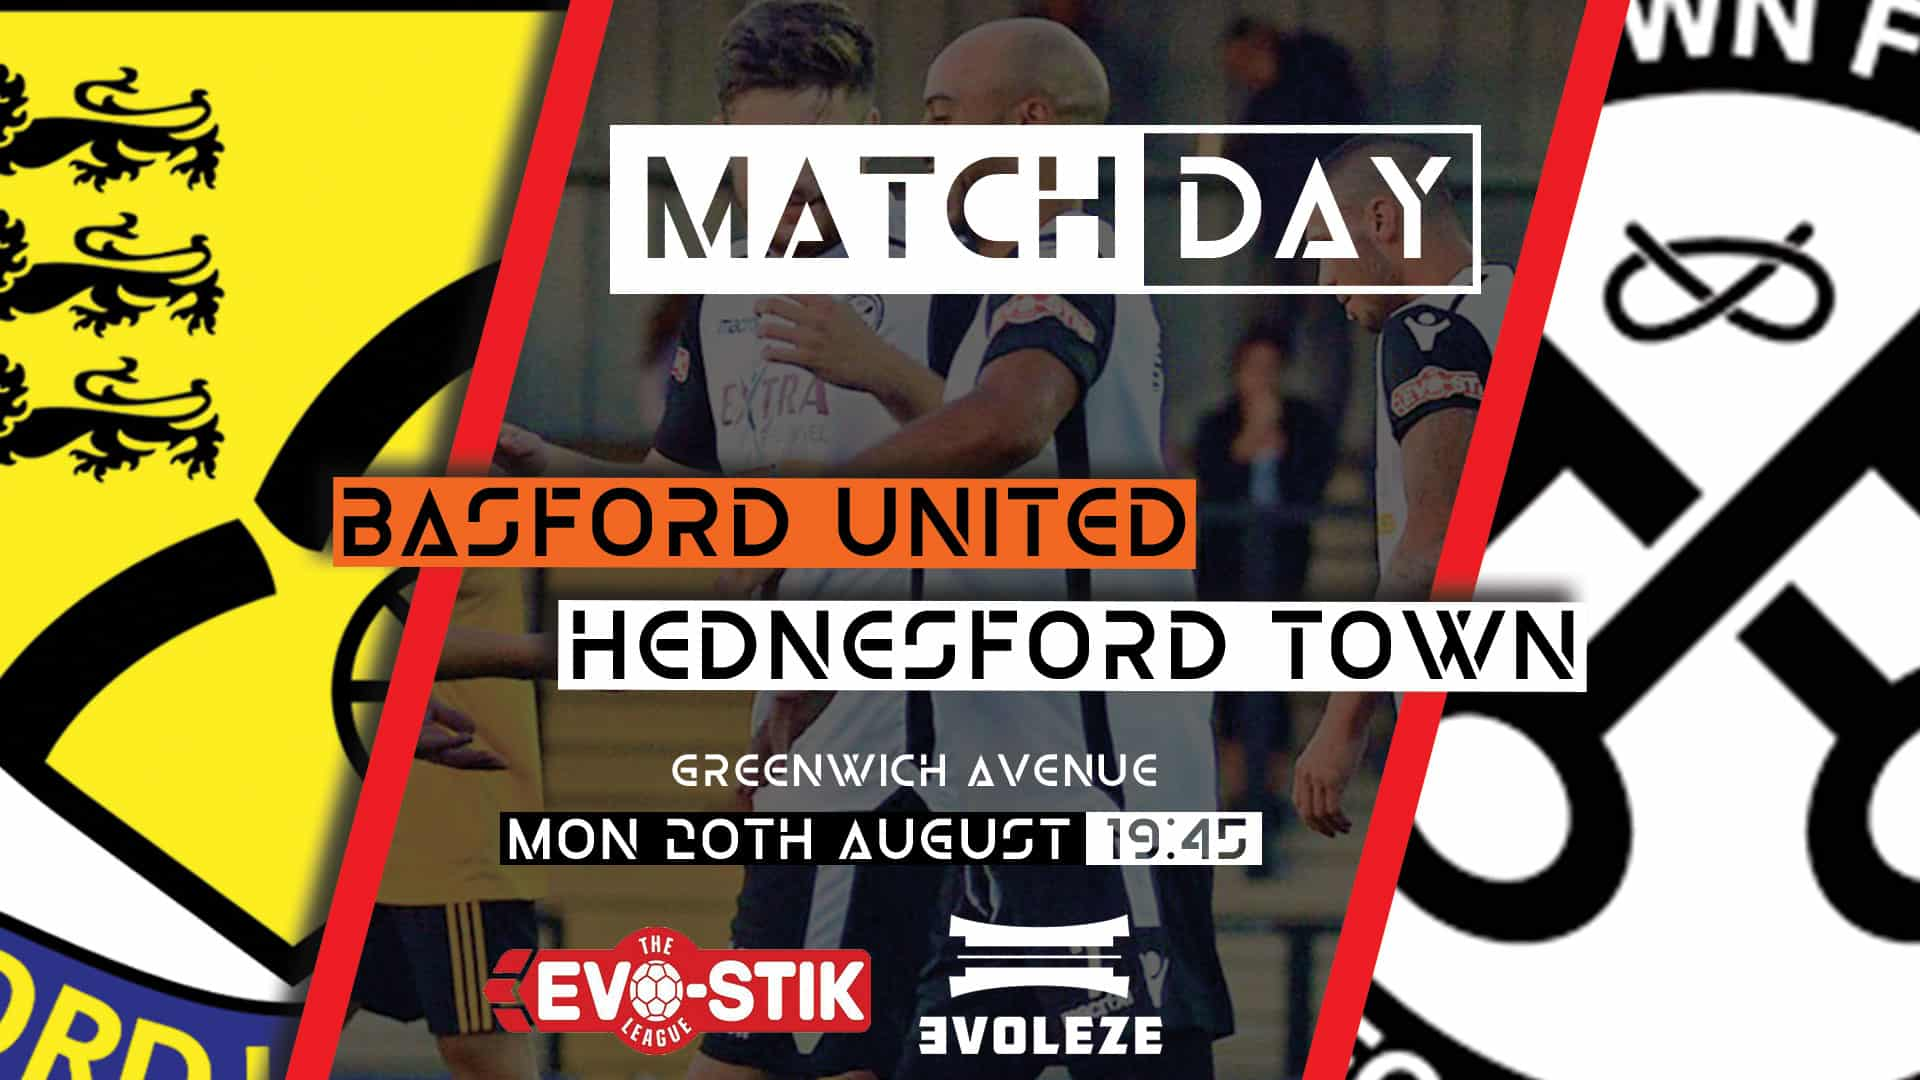 match day Hednesford Town FC